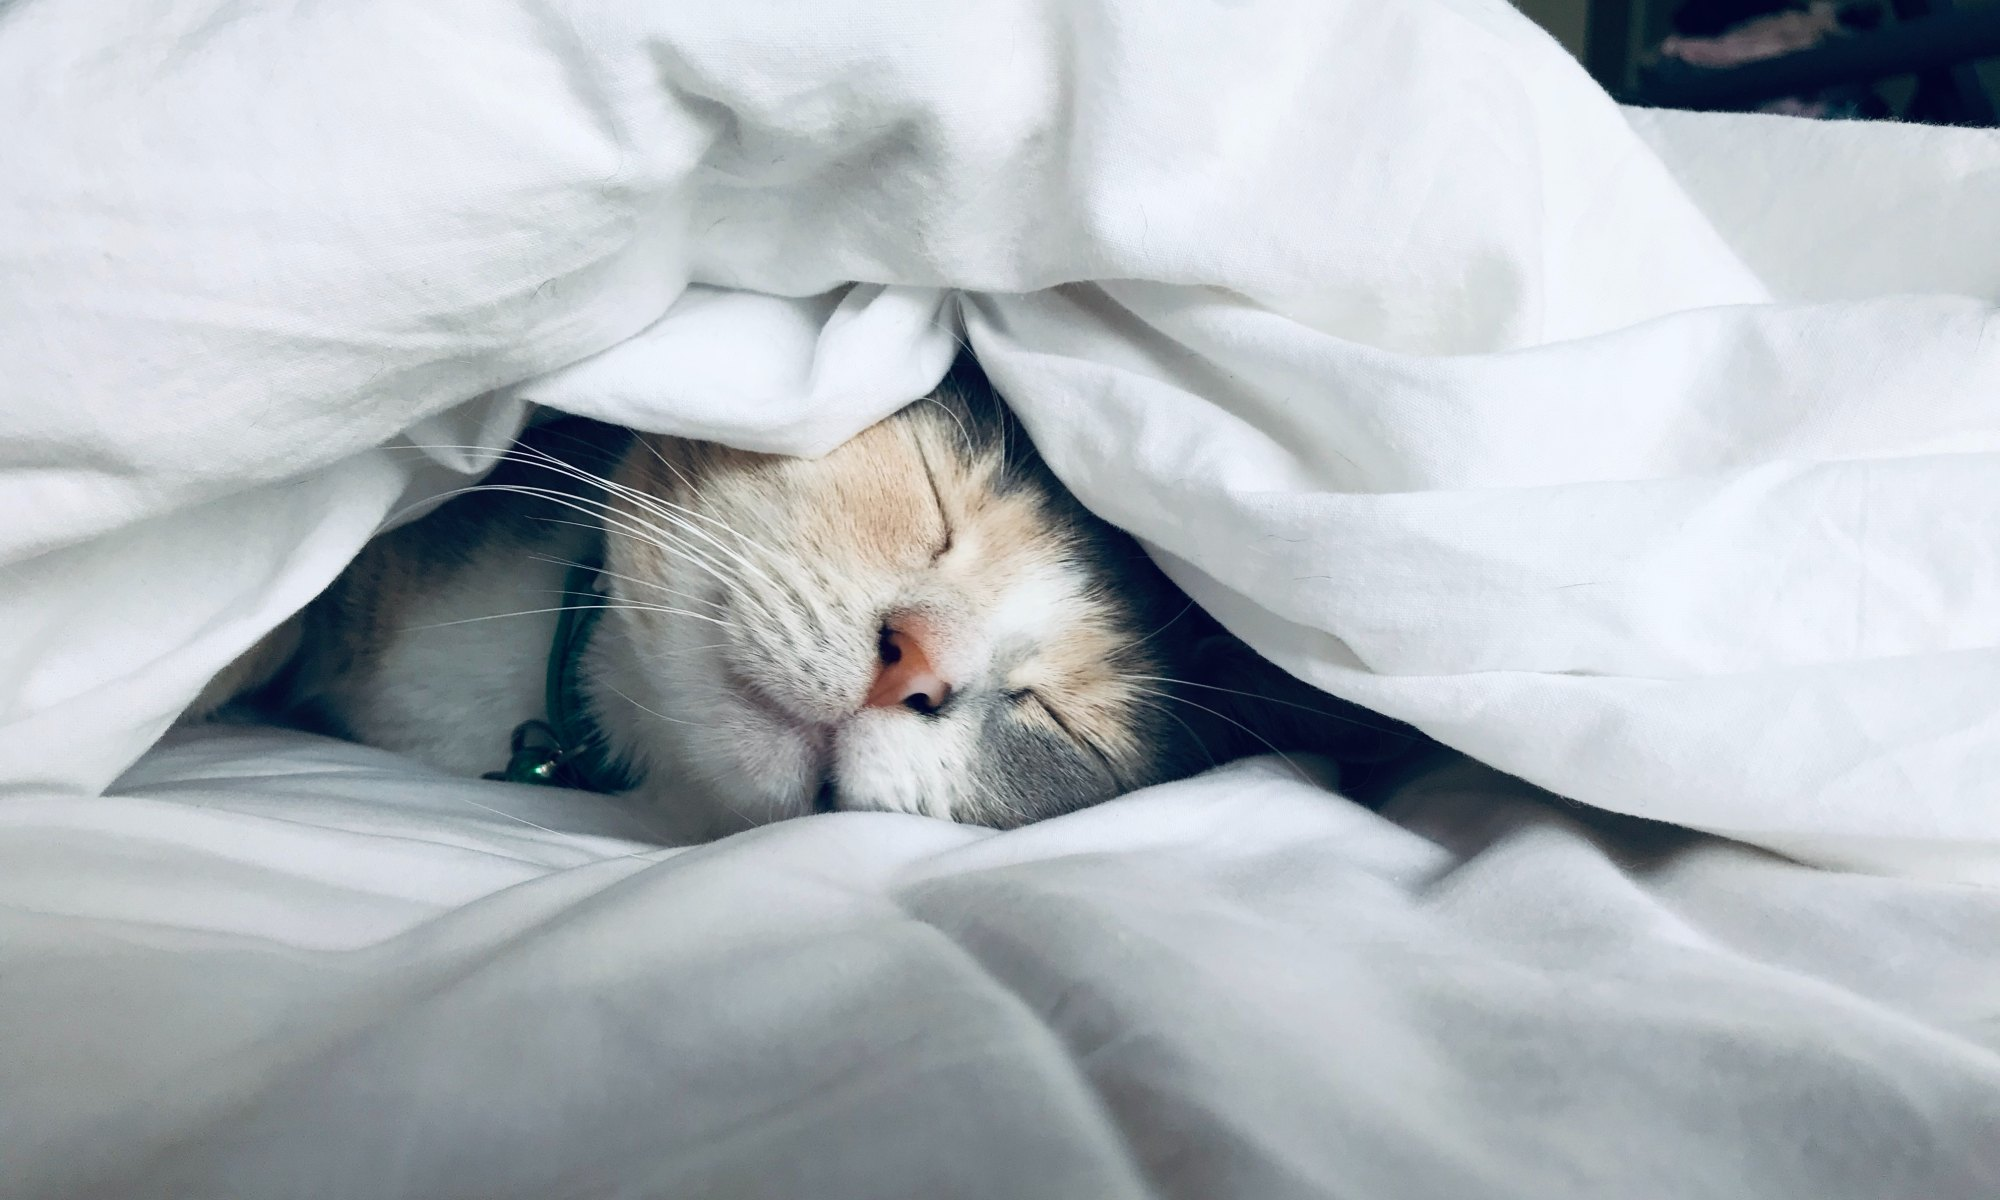 The sleep hygiene of a cat sleeping under a white comforter